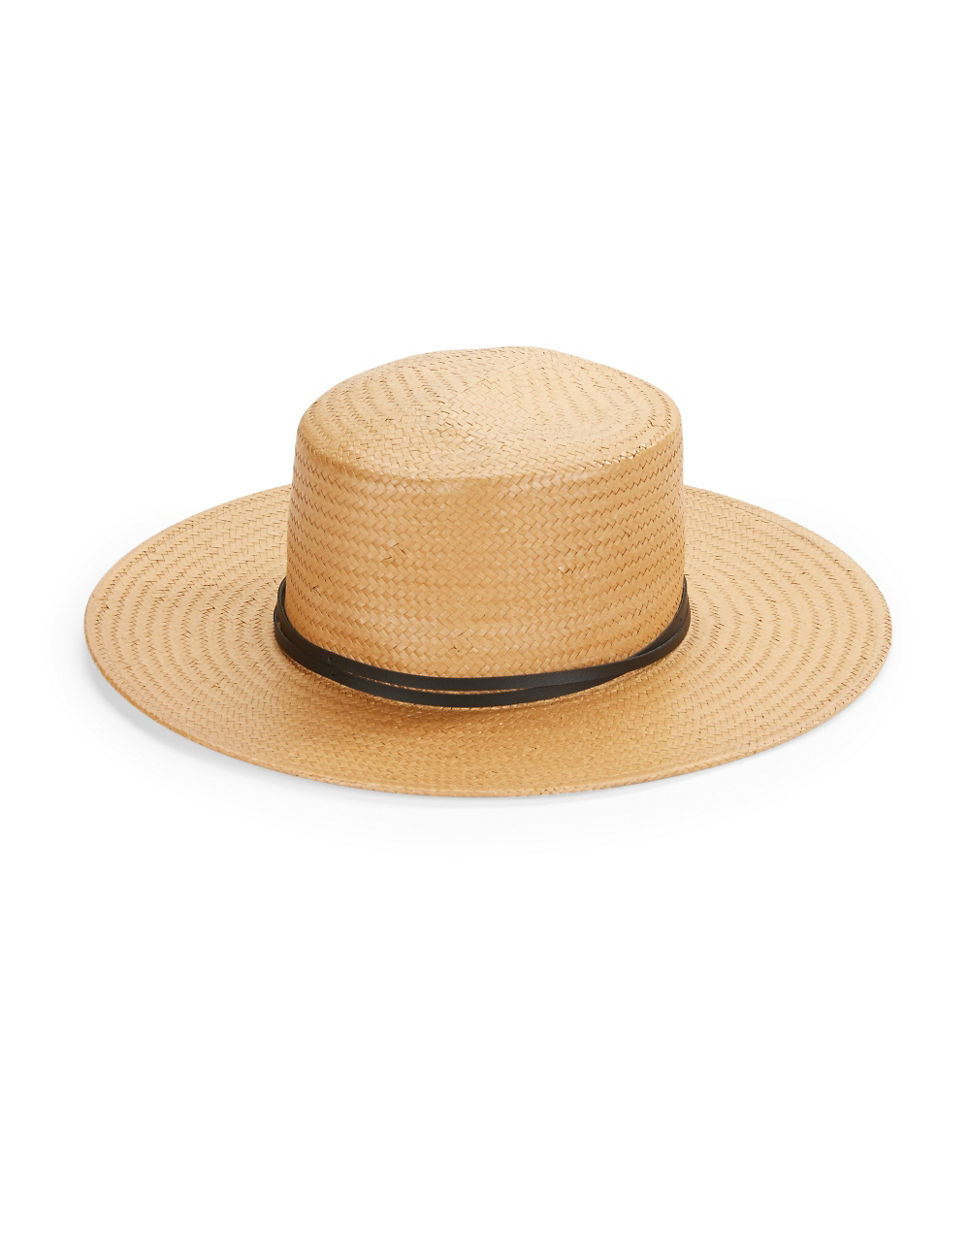 8e8ce6caa95 Bcbgeneration Woven Gaucho Hat in Natural - Lyst